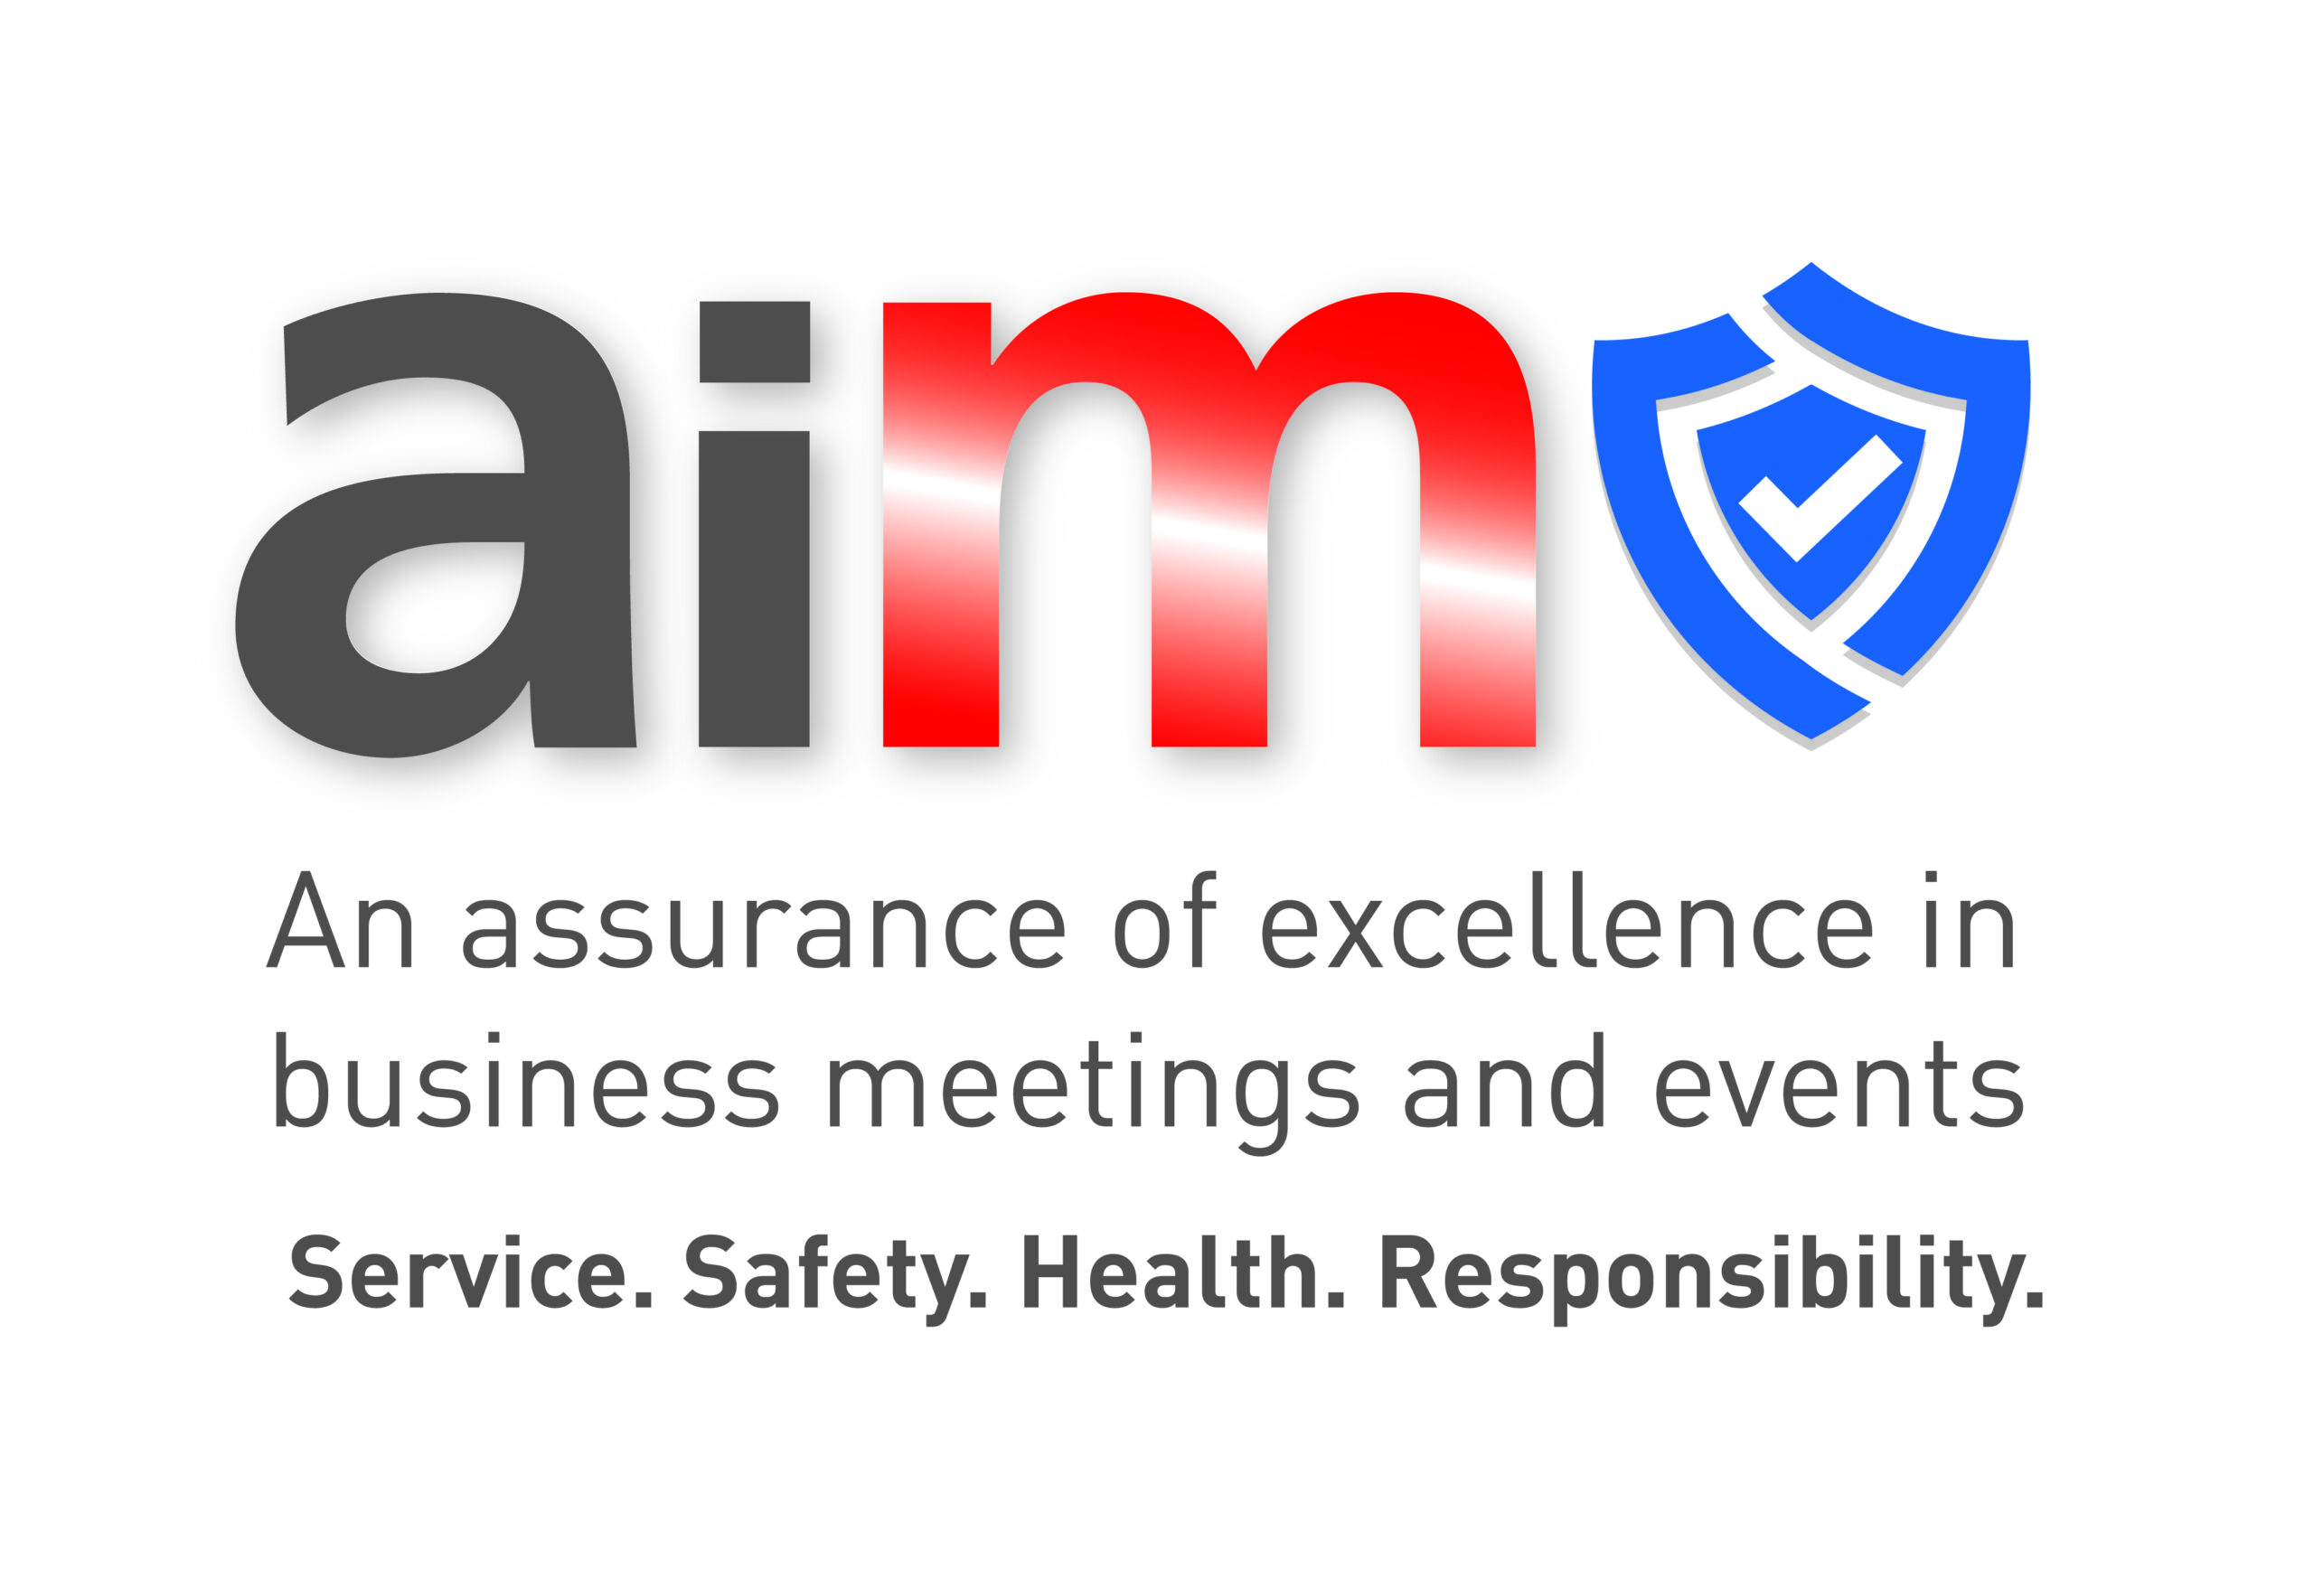 The AIM Secure logo, an assurance of excellence in business meetings and events.